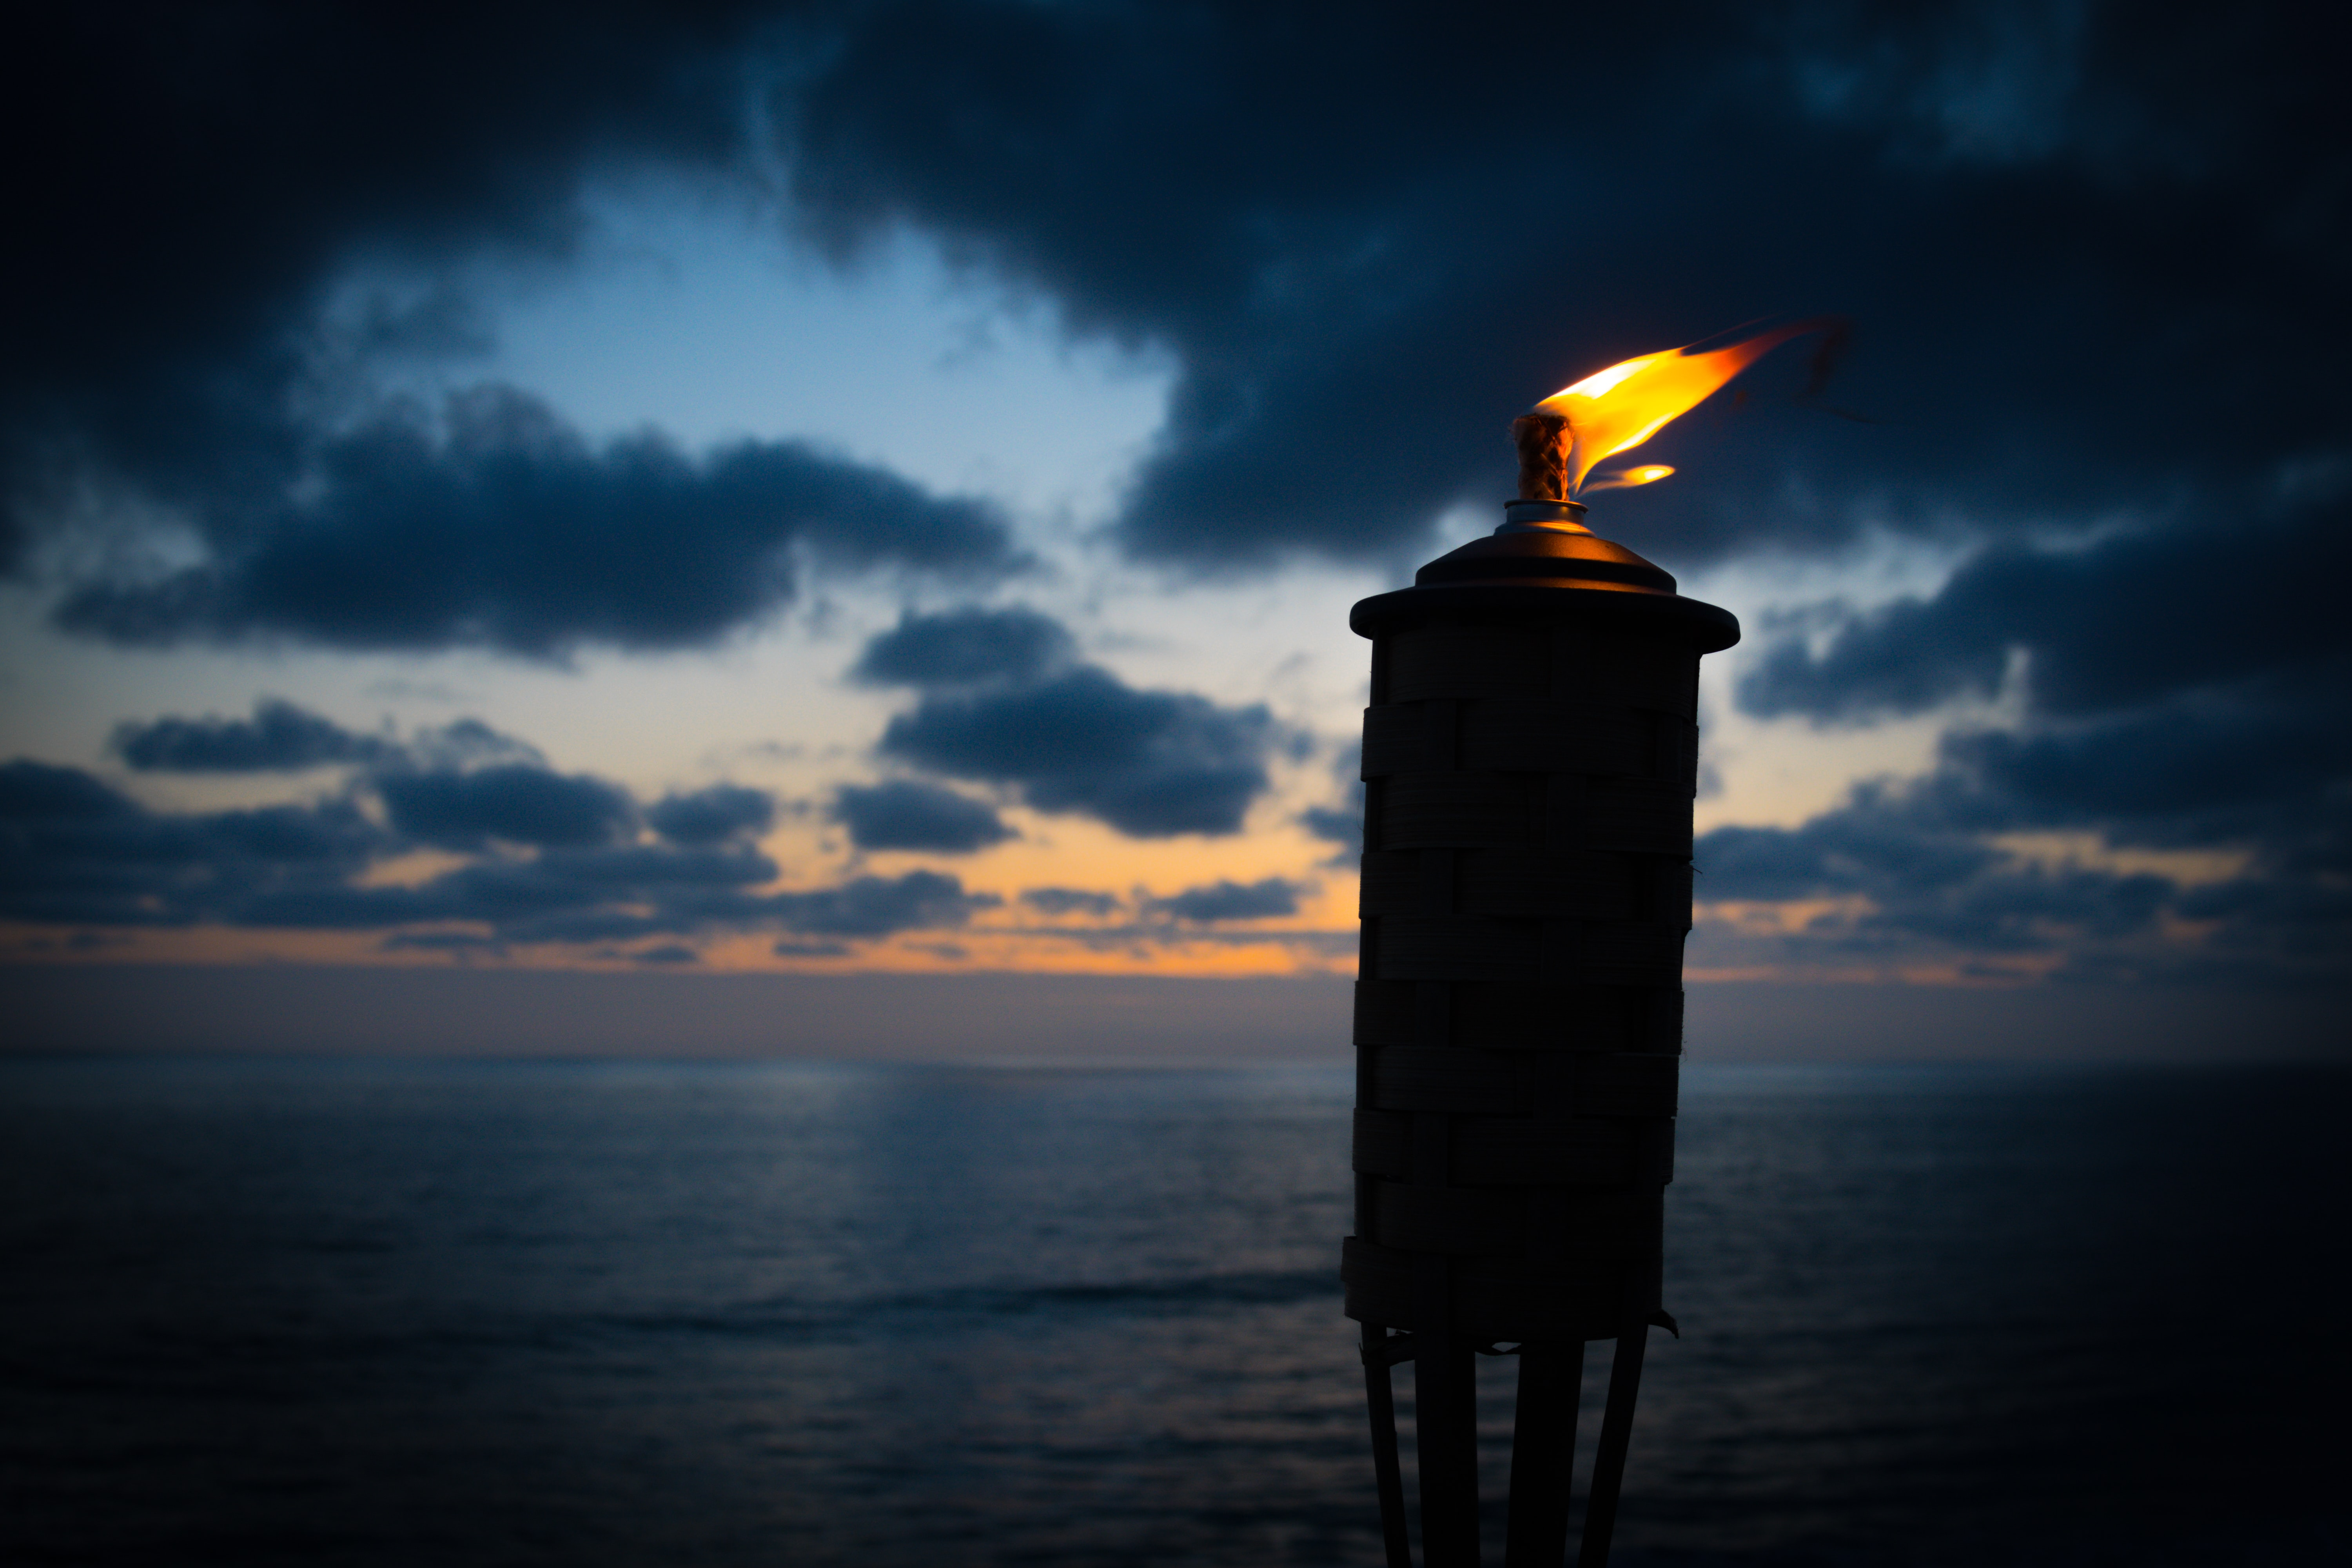 Torch burning after the sunset on the ocean shore at Carlsbad State Beach